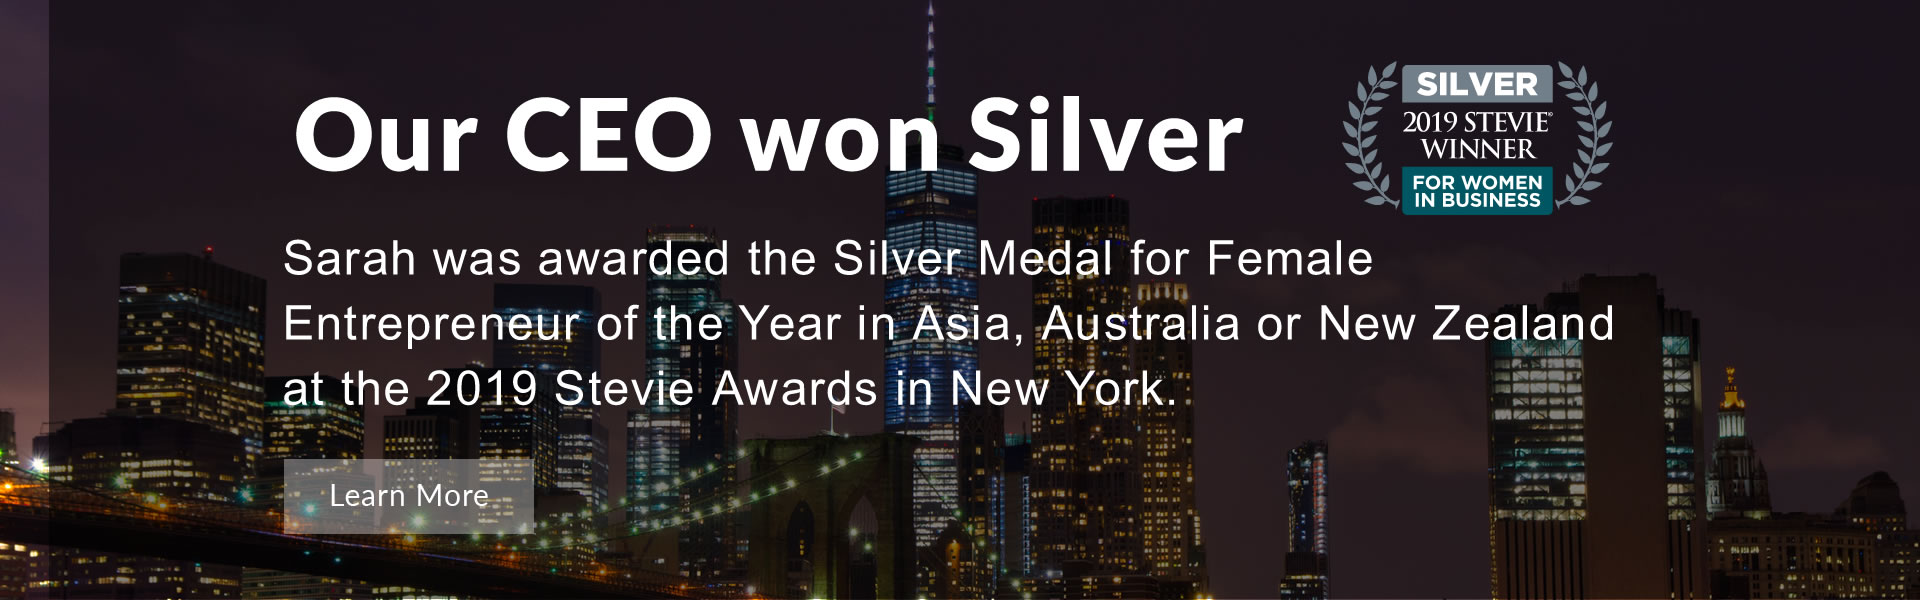 Our CEO Sarah was award the Silver Medal for Female Entrepreneur of the Year in Asia, Australia or New Zealand